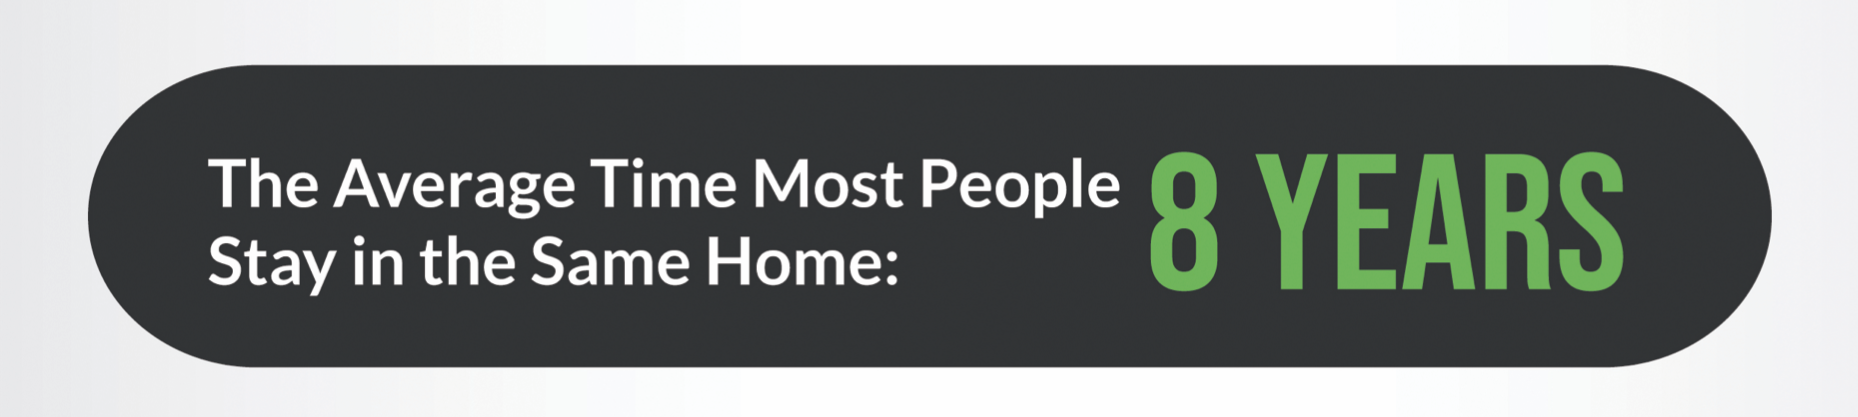 """A graphic with dark grey background that reads """"The average time most people stay in the home same: 8 years"""""""